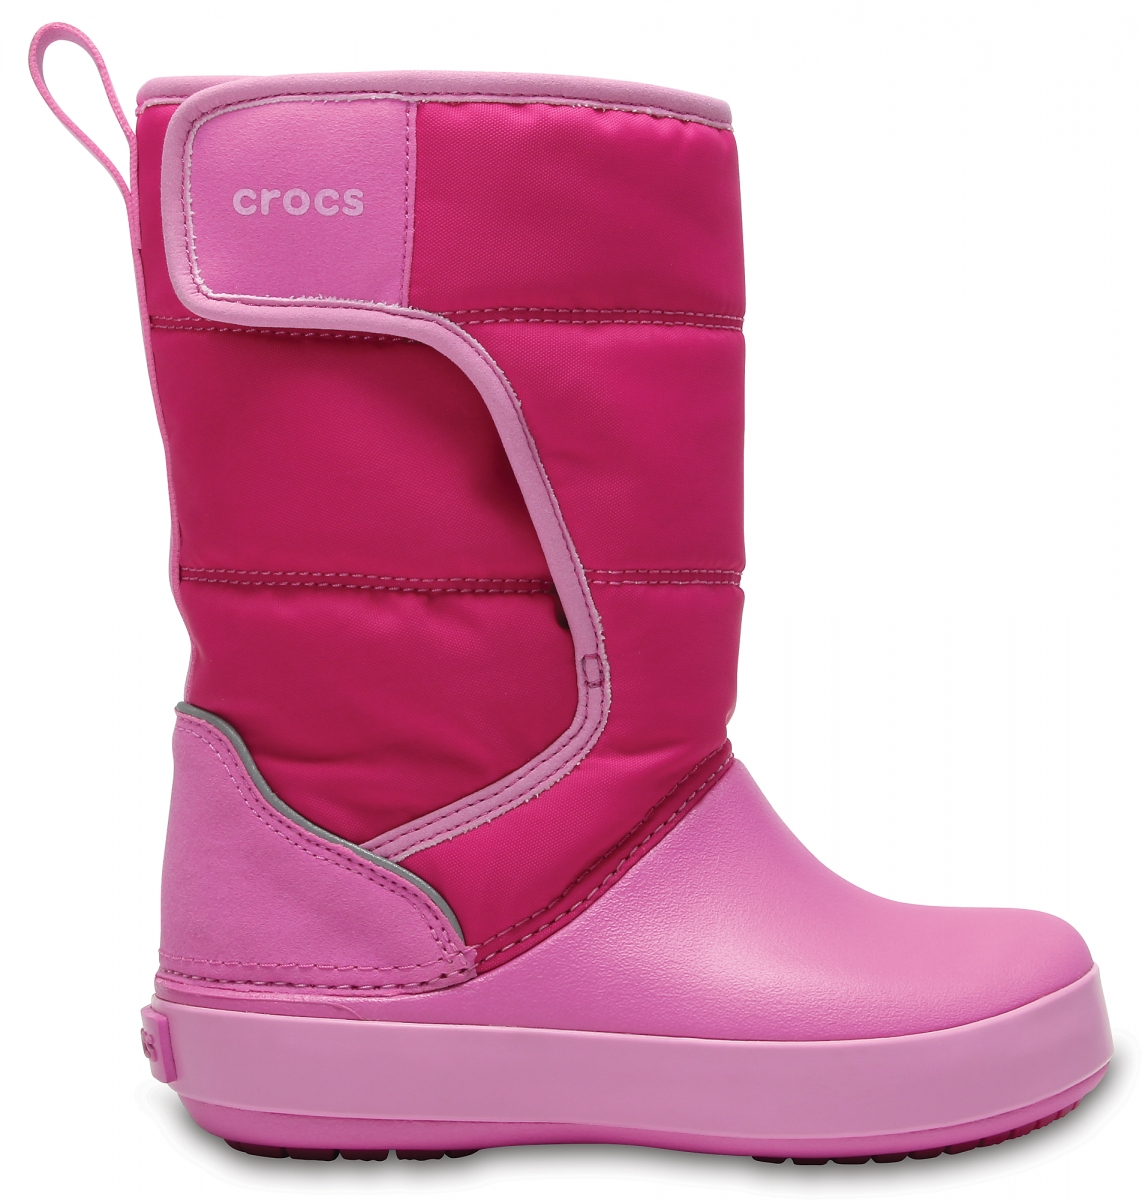 Crocs LodgePoint Snow Boot Kids - Candy Pink/Party Pink, J3 (34-35)